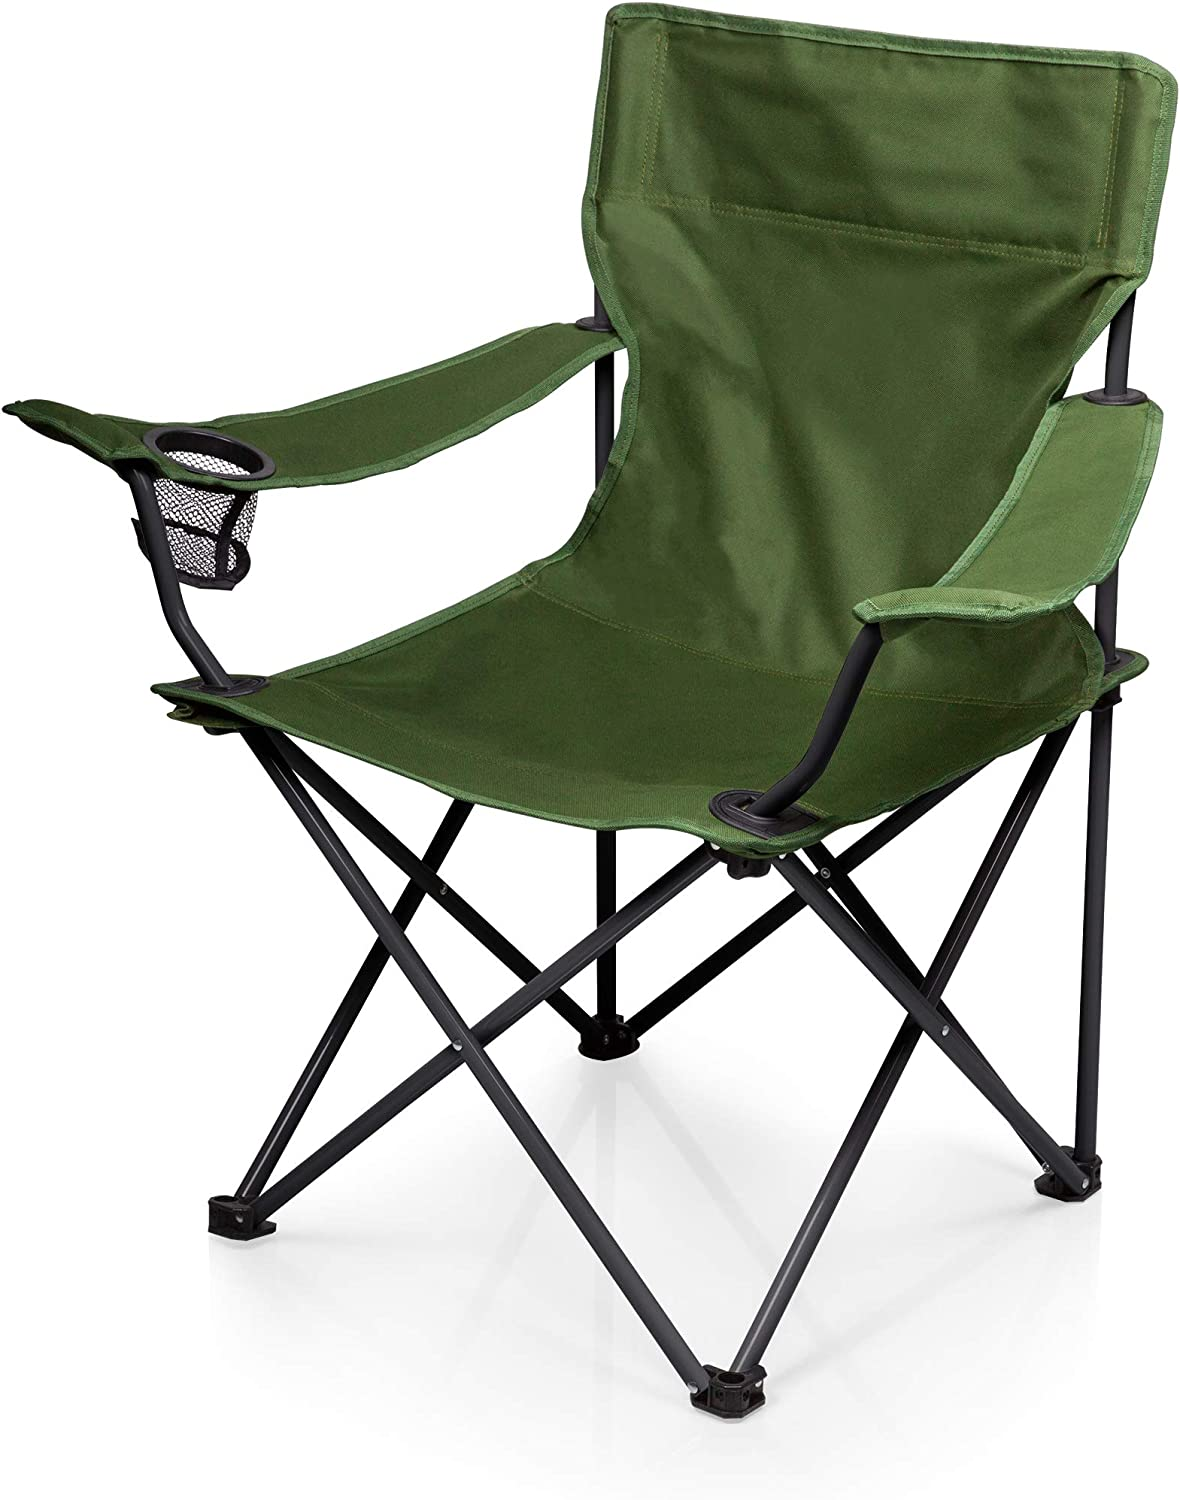 ONIVA – a Picnic Time Brand PTZ Portable Folding Camp Chair, Green